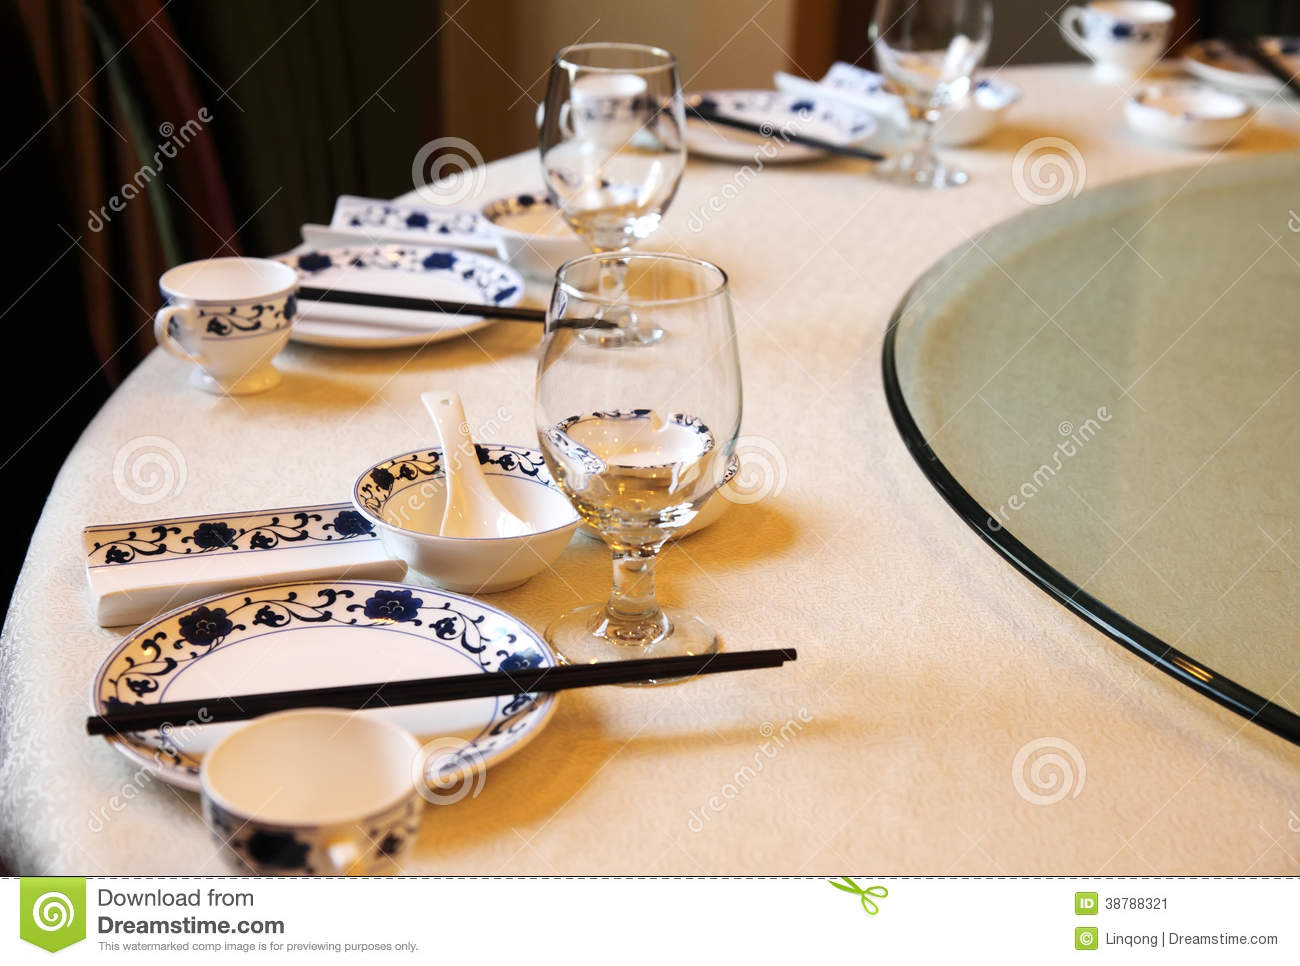 Chinese Banquet Table Setting Stock Photo Image 38788321